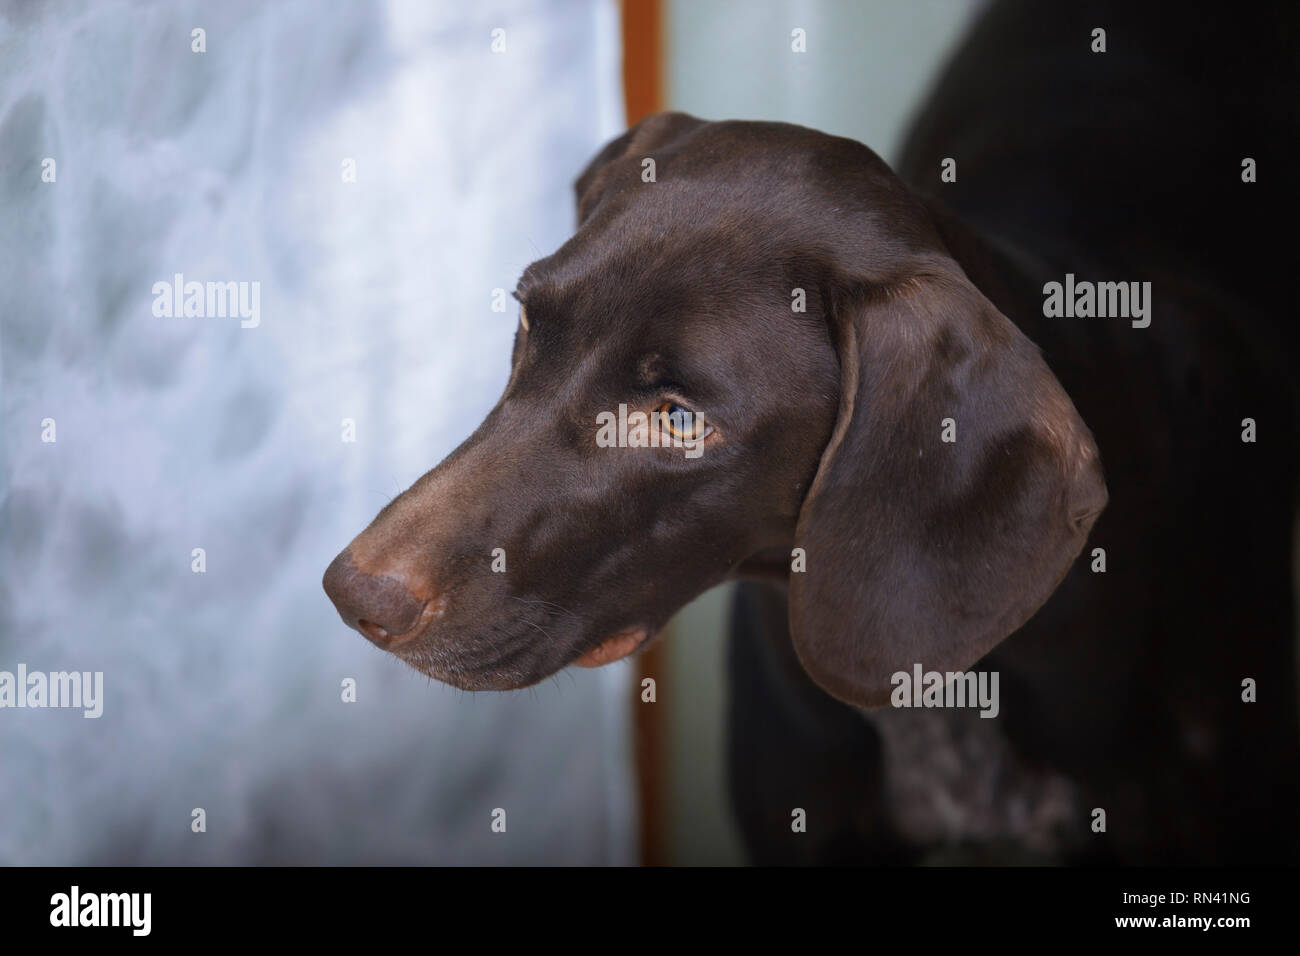 German Shorthaired Pointer - Stock Image